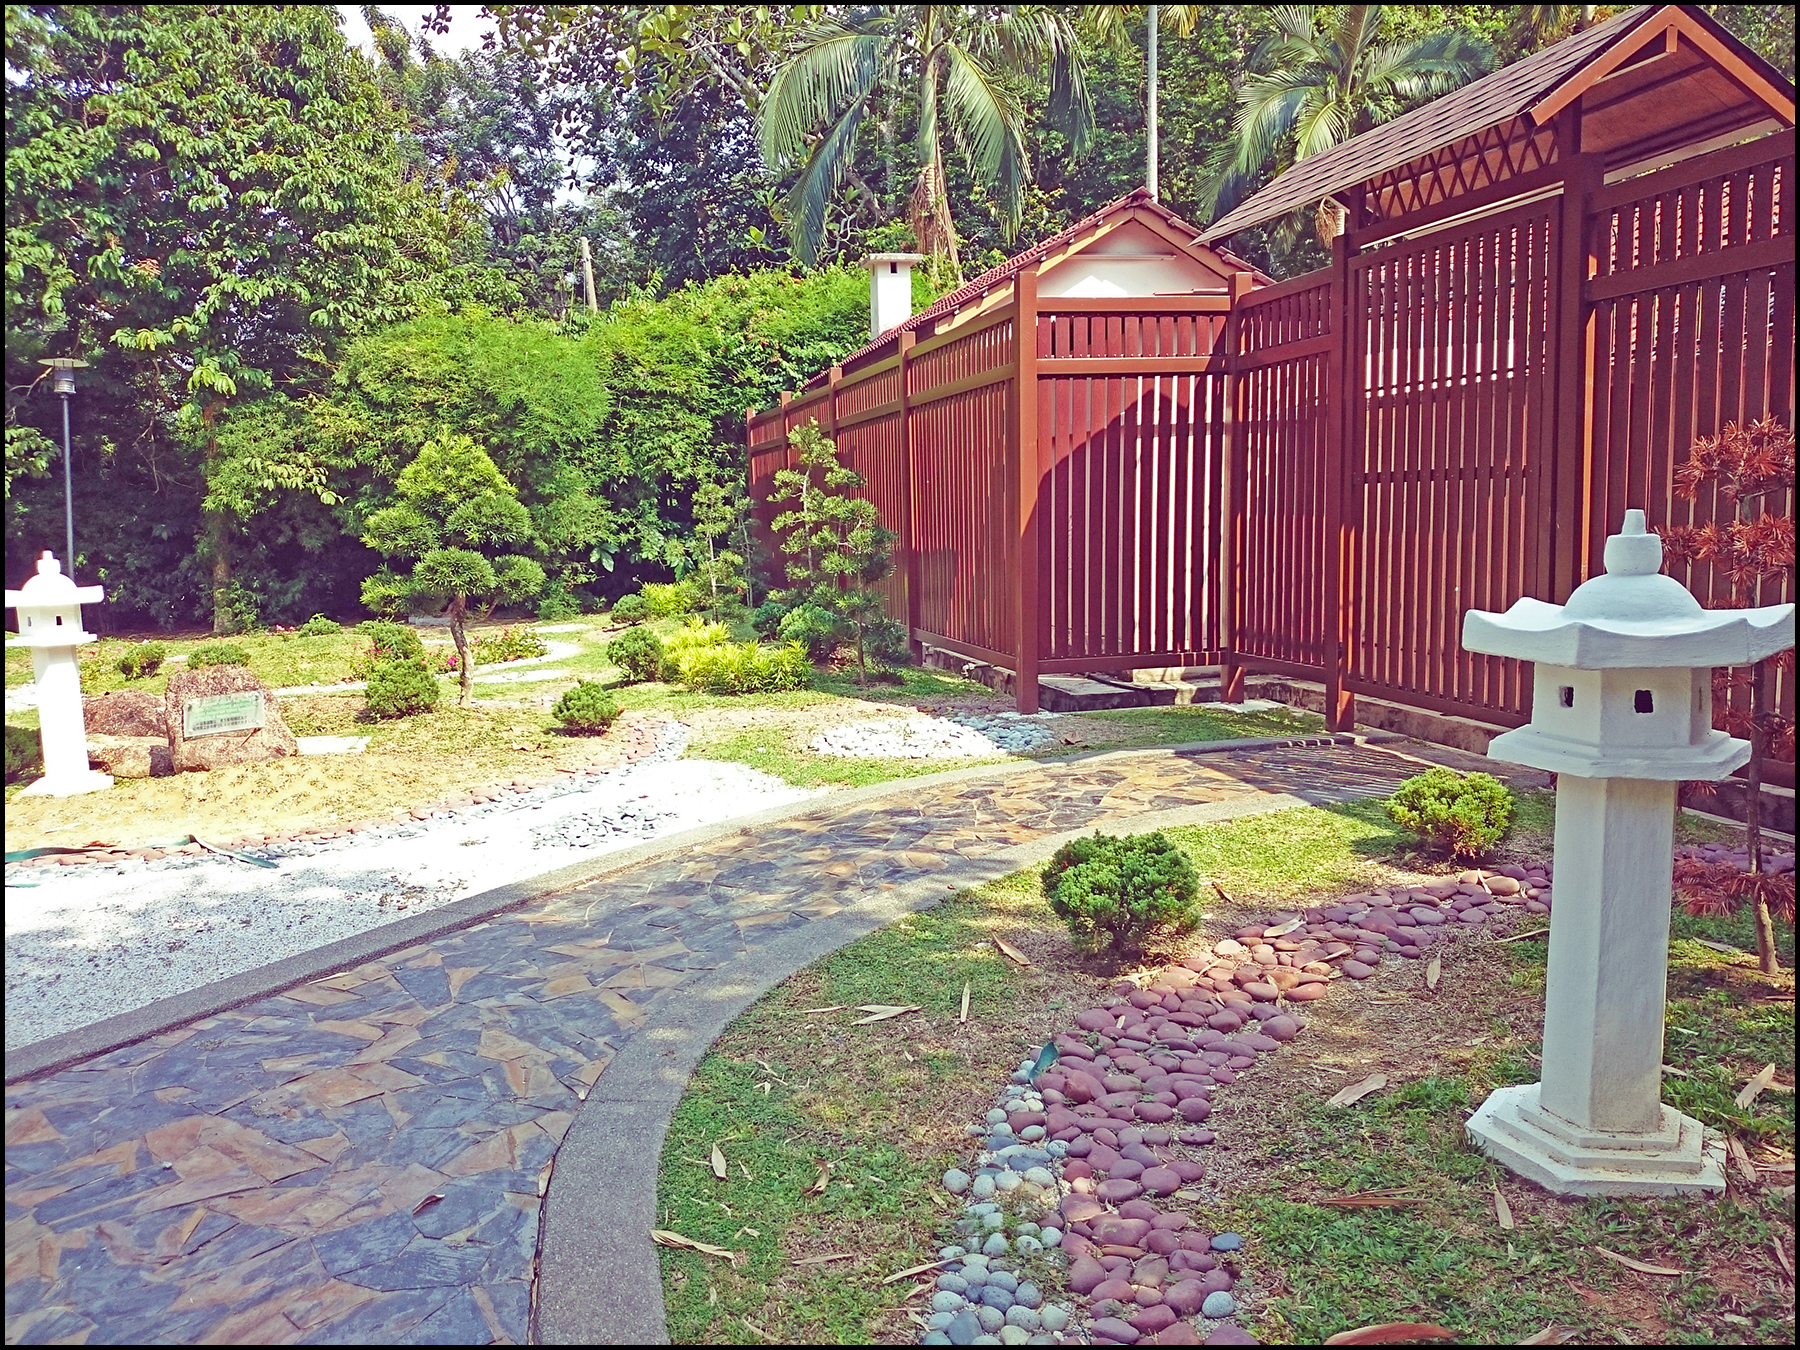 This Miniature Japanese Garden Was Originally Created From An Exchange  Programme Between The Penang Government And The Itabashi City Of Japan In  1994.